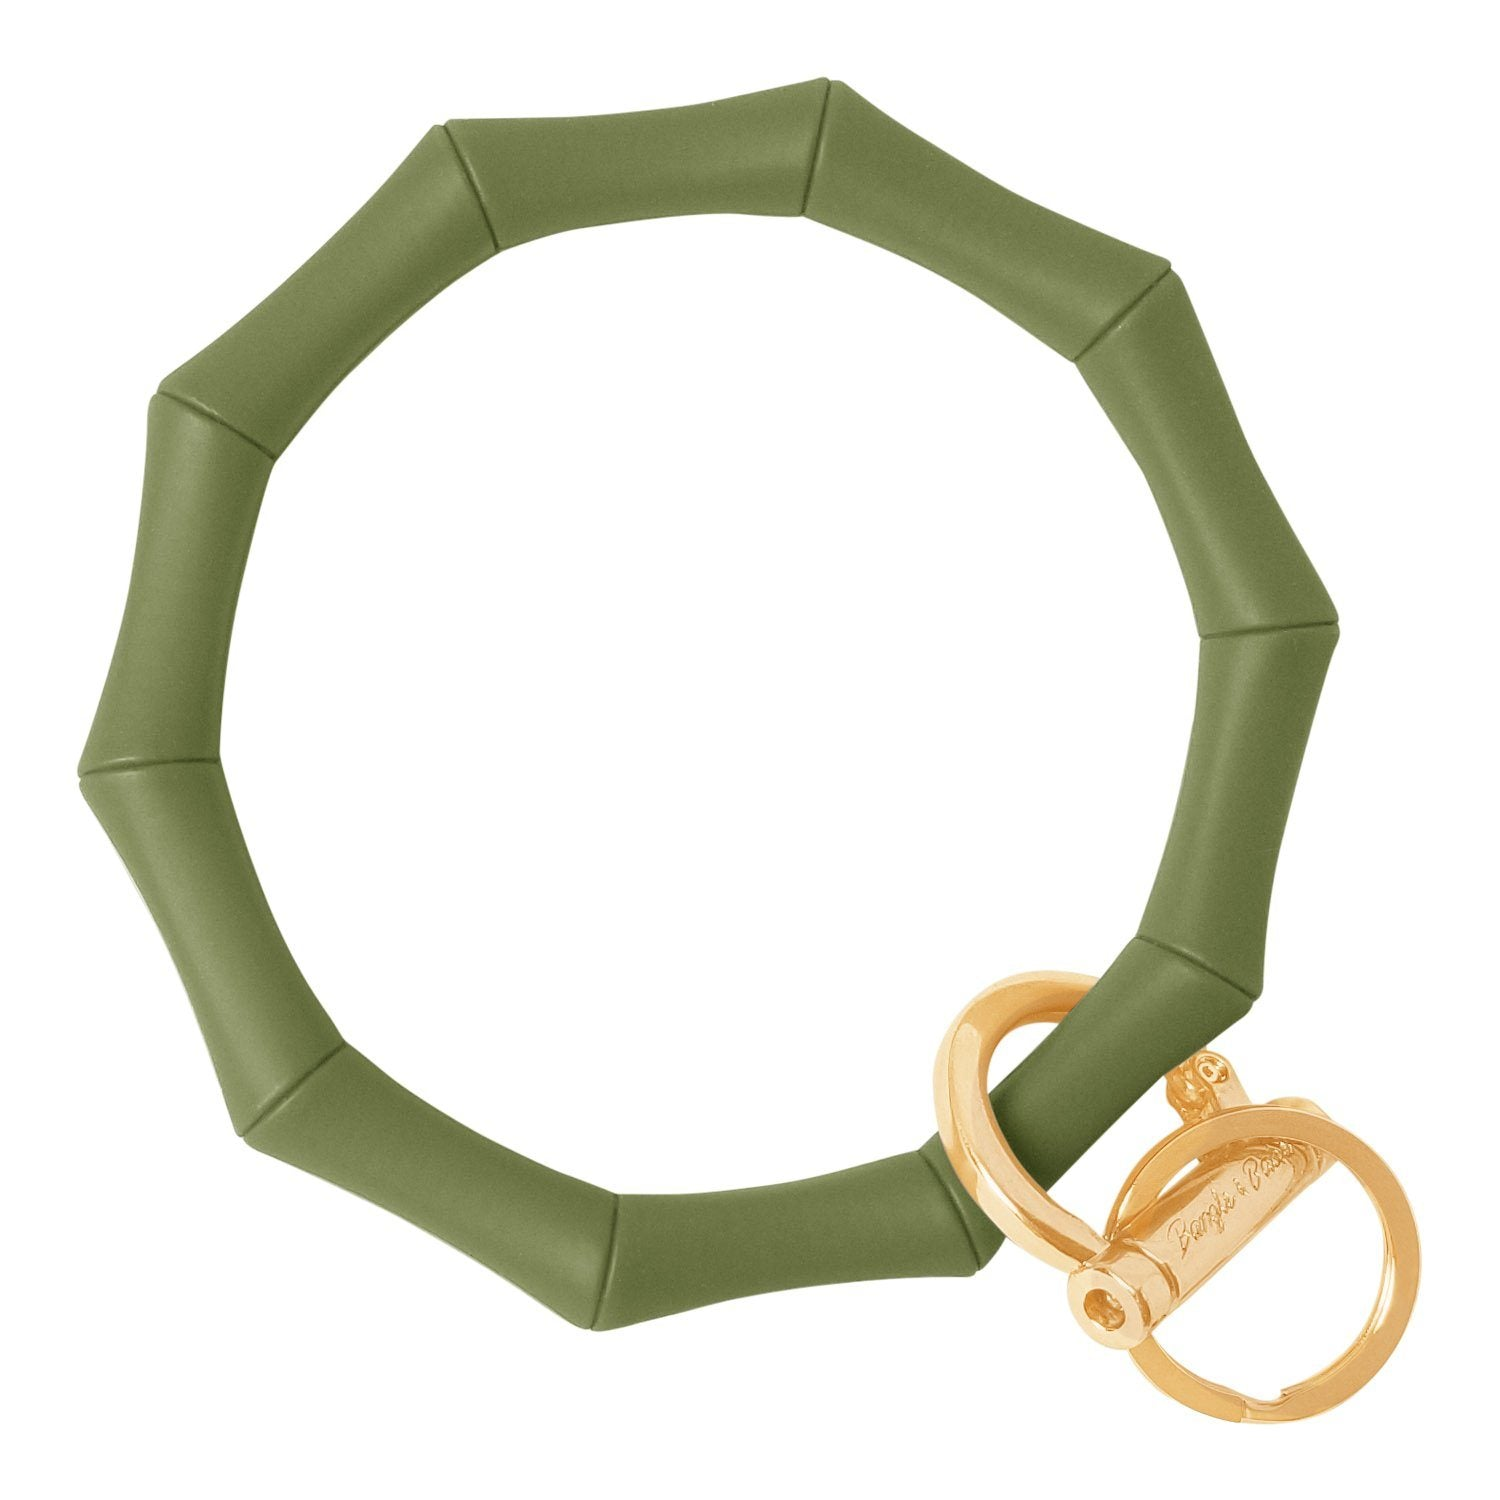 Bamboo Inspired Bangle & Babe Bracelet Key Ring Bamboo – Army Green Gold